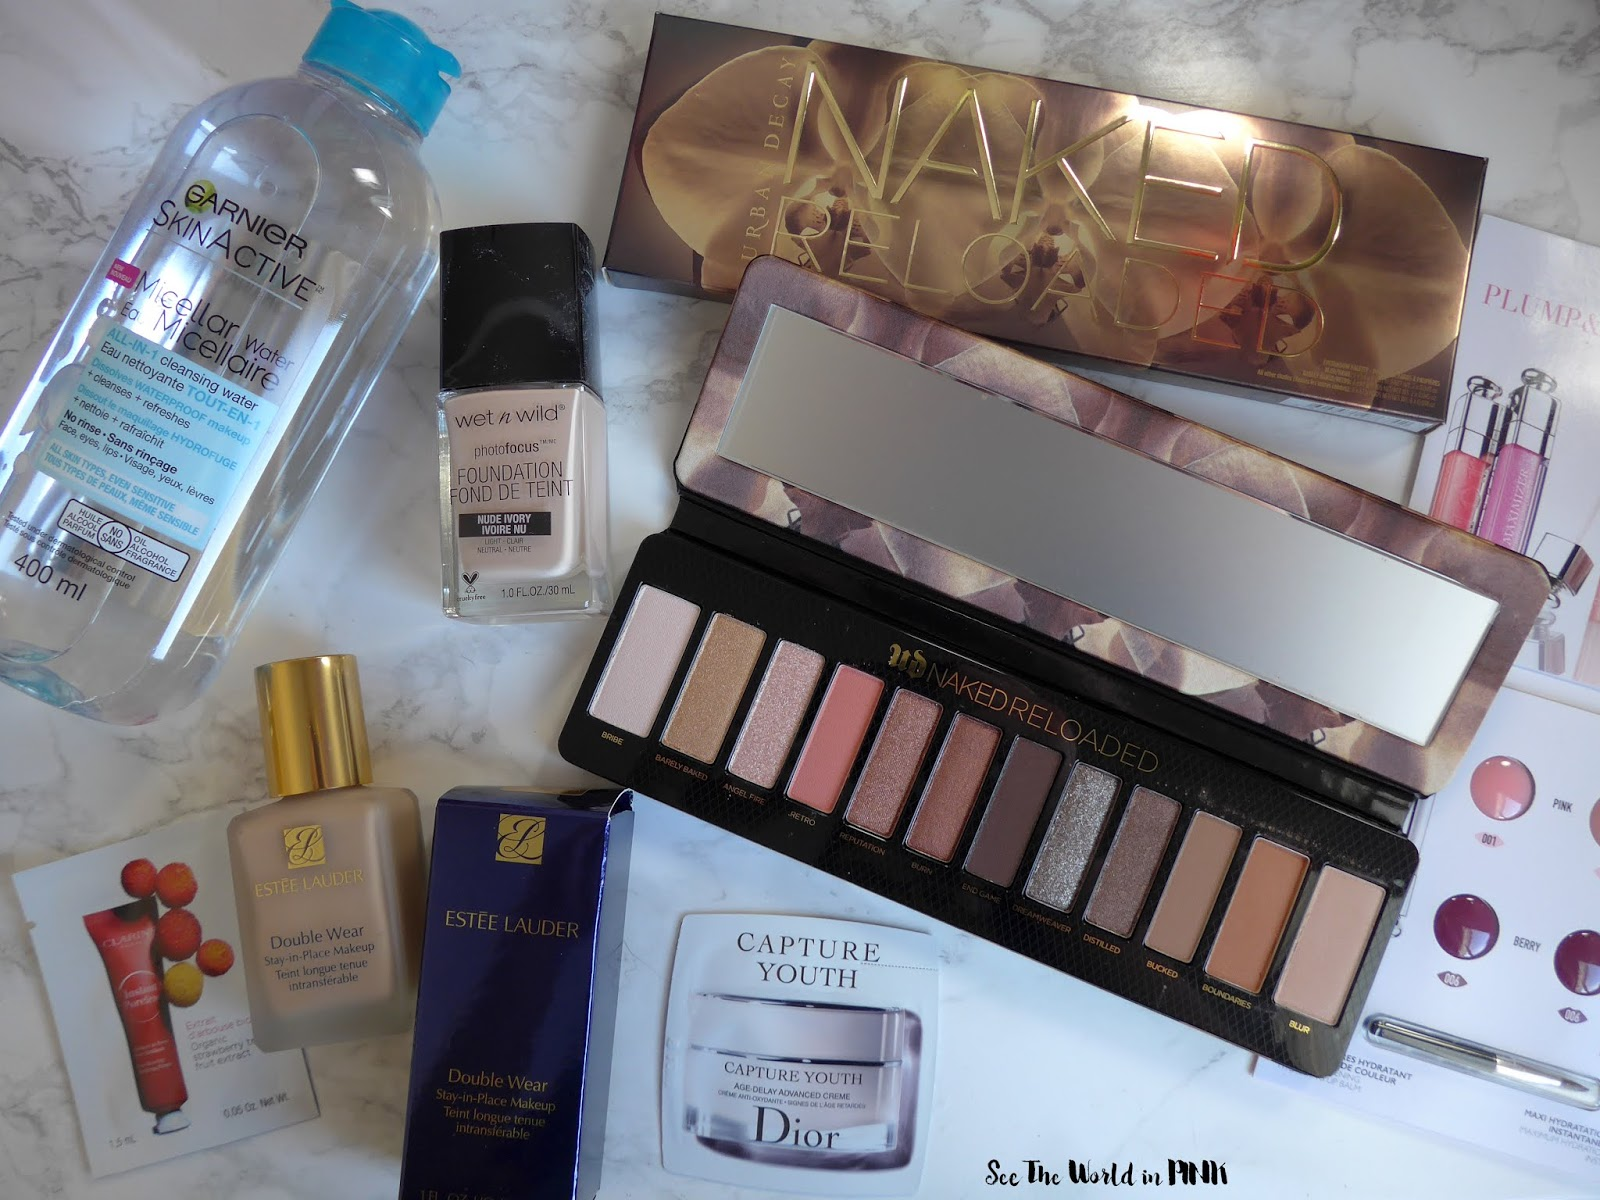 March 2019 Monthly Haul - What I Bought!